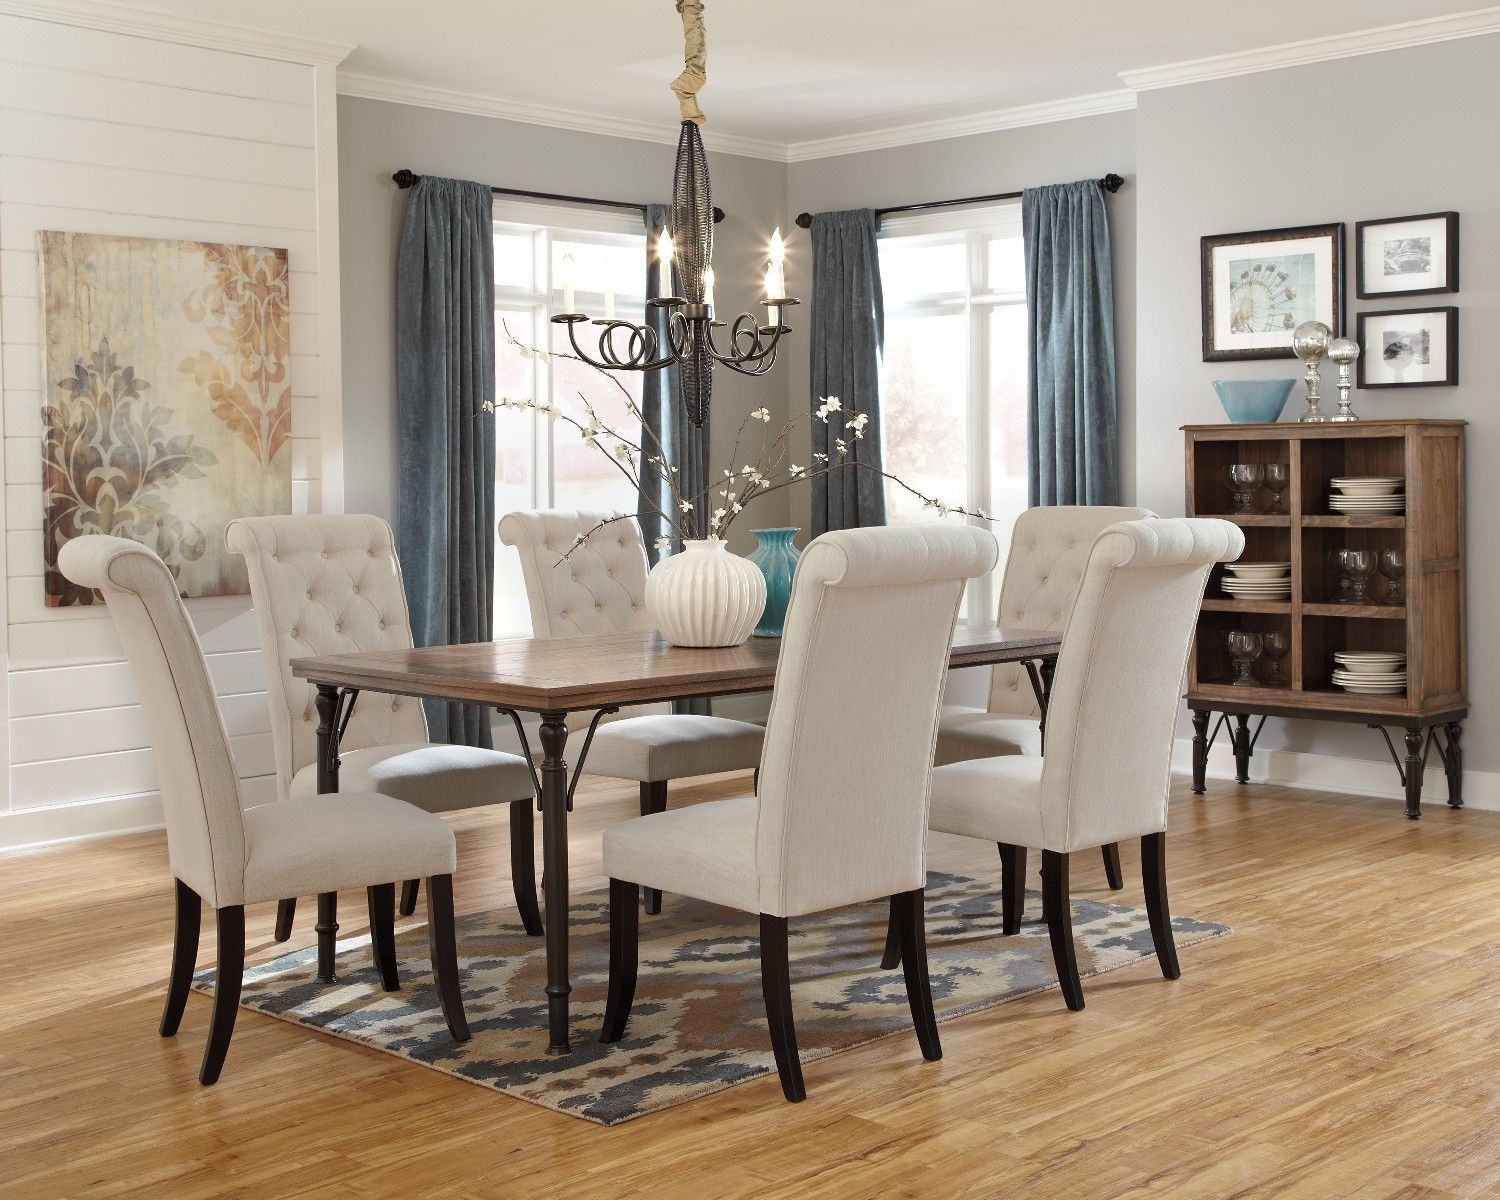 2017 Casual Dining Room Furniture Extra Comfort And Classy Look Gorgeous Casual Dining Room Sets Decorating Inspiration